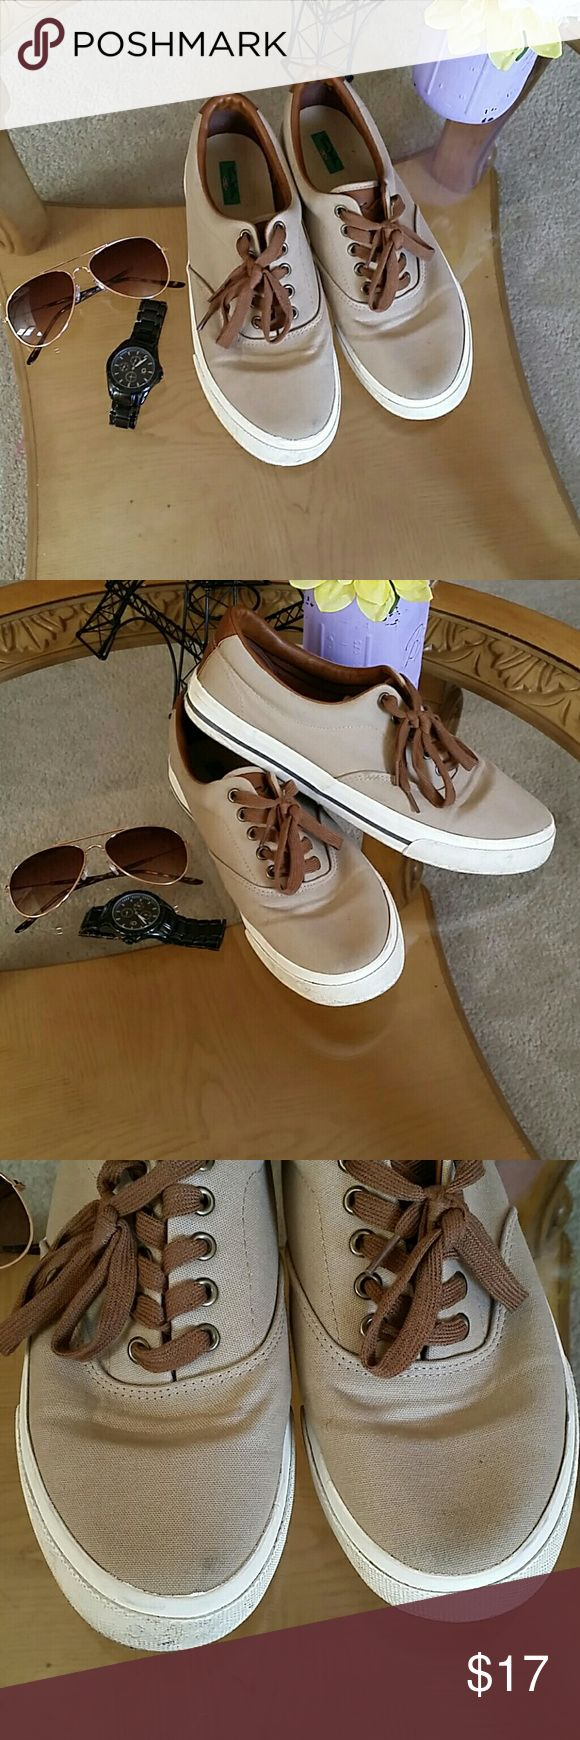 Men's Casual sneakers Men's Casual sneakers, size 9 Light brown, brown laces and creme bottoms. Used once last year for a wedding, good used condition. A little dirty in front (see pic 3) will clean before shipping. Great for everyday, work or outdoor weddings. Thom McAn Shoes Sneakers